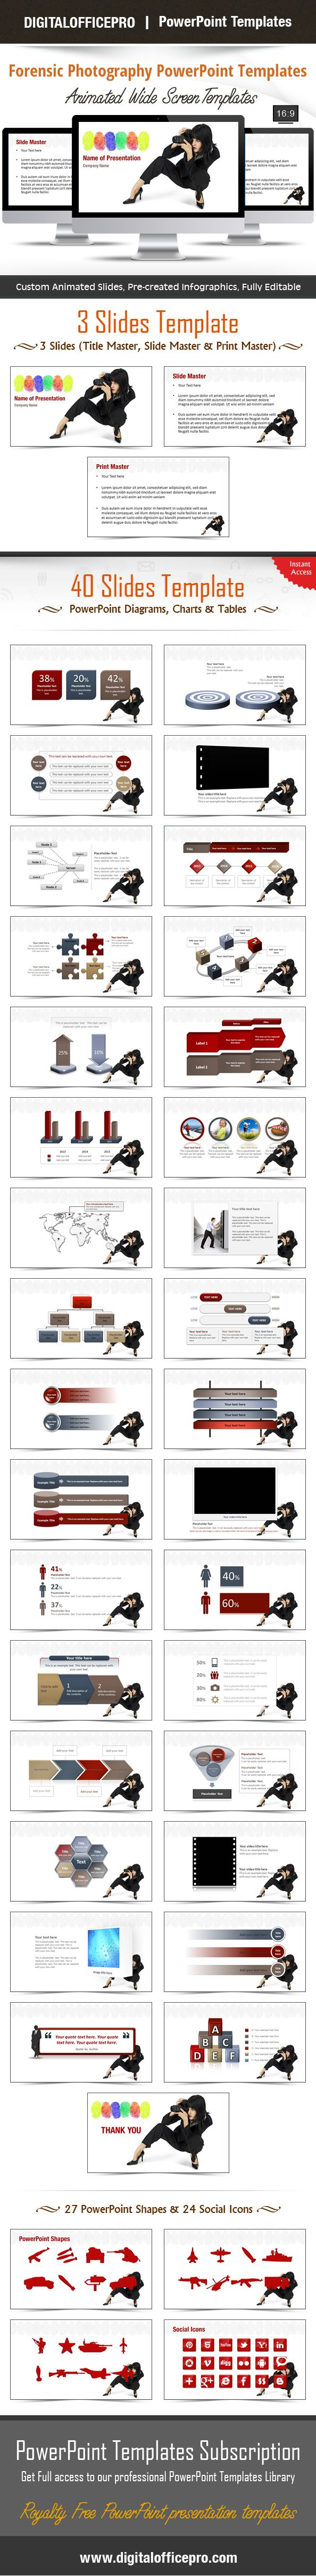 Impress and Engage your audience with Forensic Photography PowerPoint Template and Forensic Photography PowerPoint Backgrounds from DigitalOfficePro. Each template comes with a set of PowerPoint Diagrams, Charts & Shapes and are available for instant download.